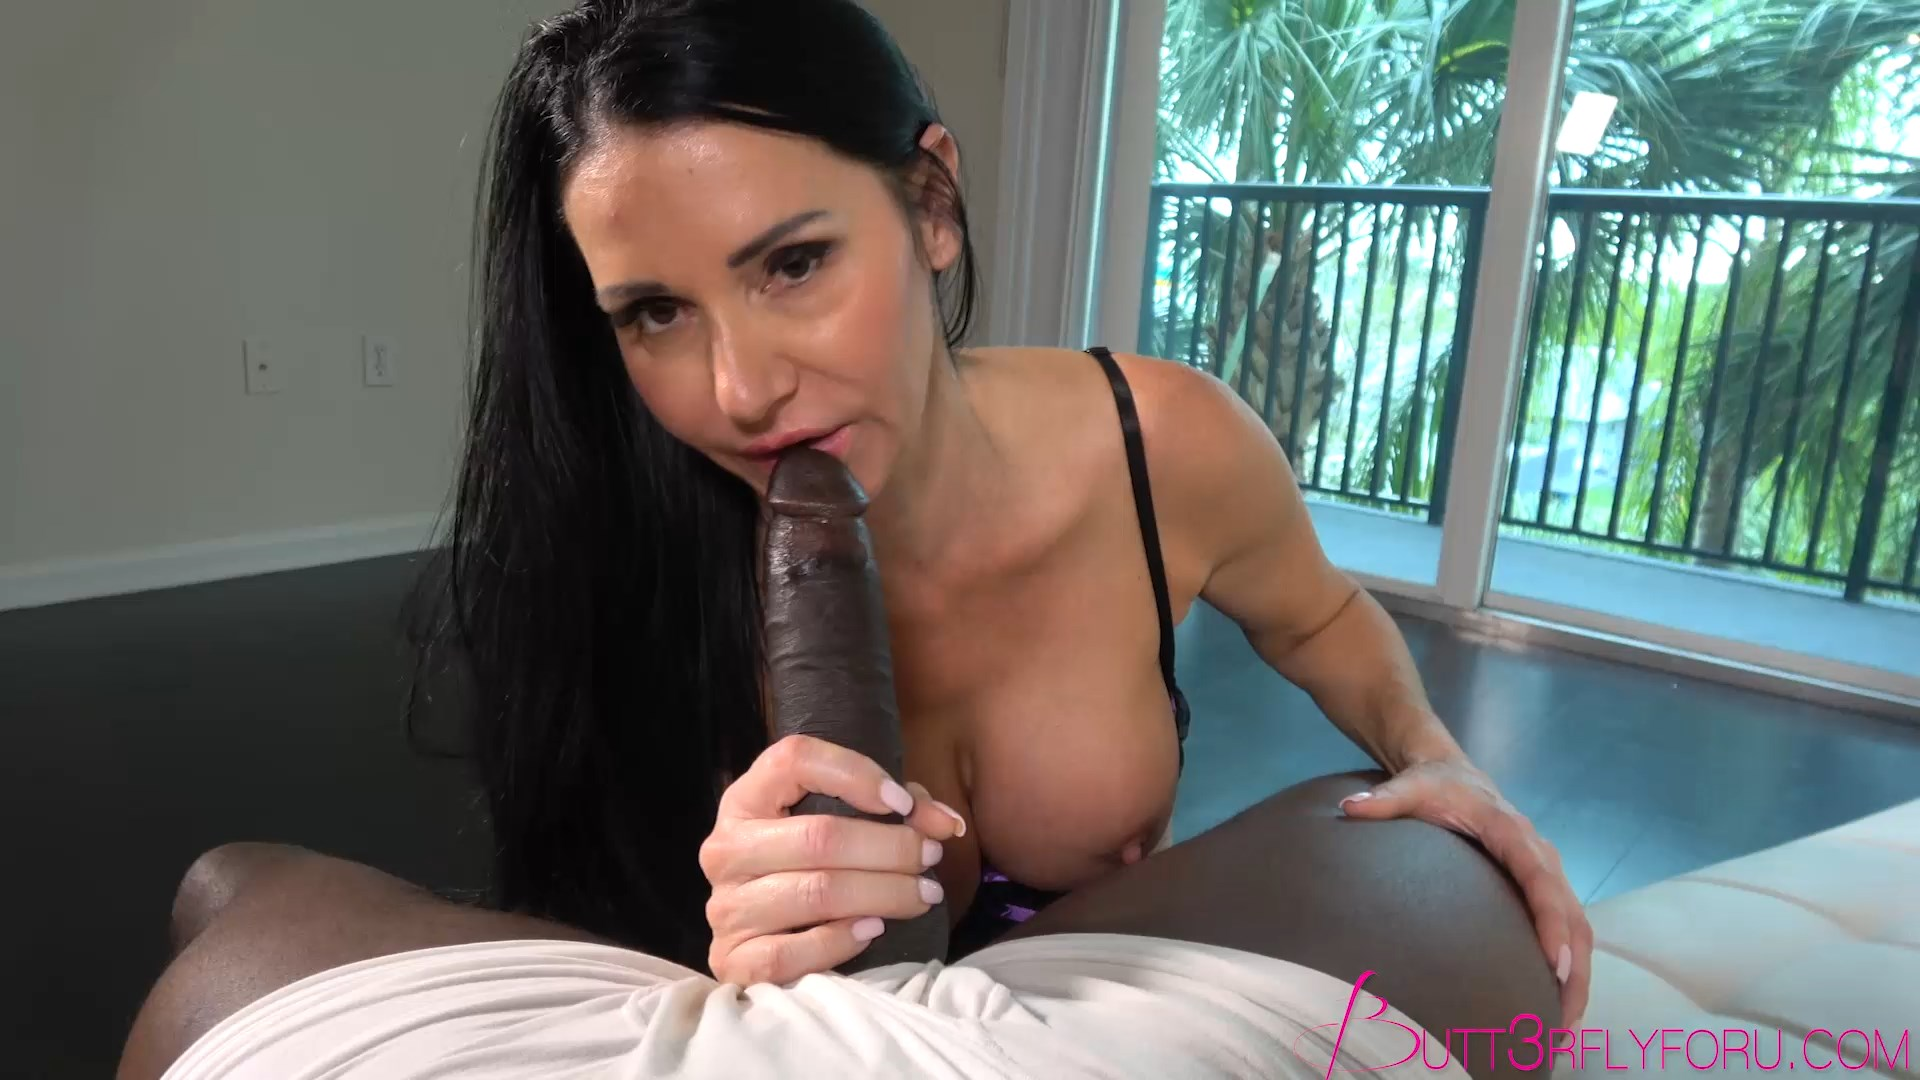 Butt3rflyforU Fantasies - Happy Wife Happy Life 1080p